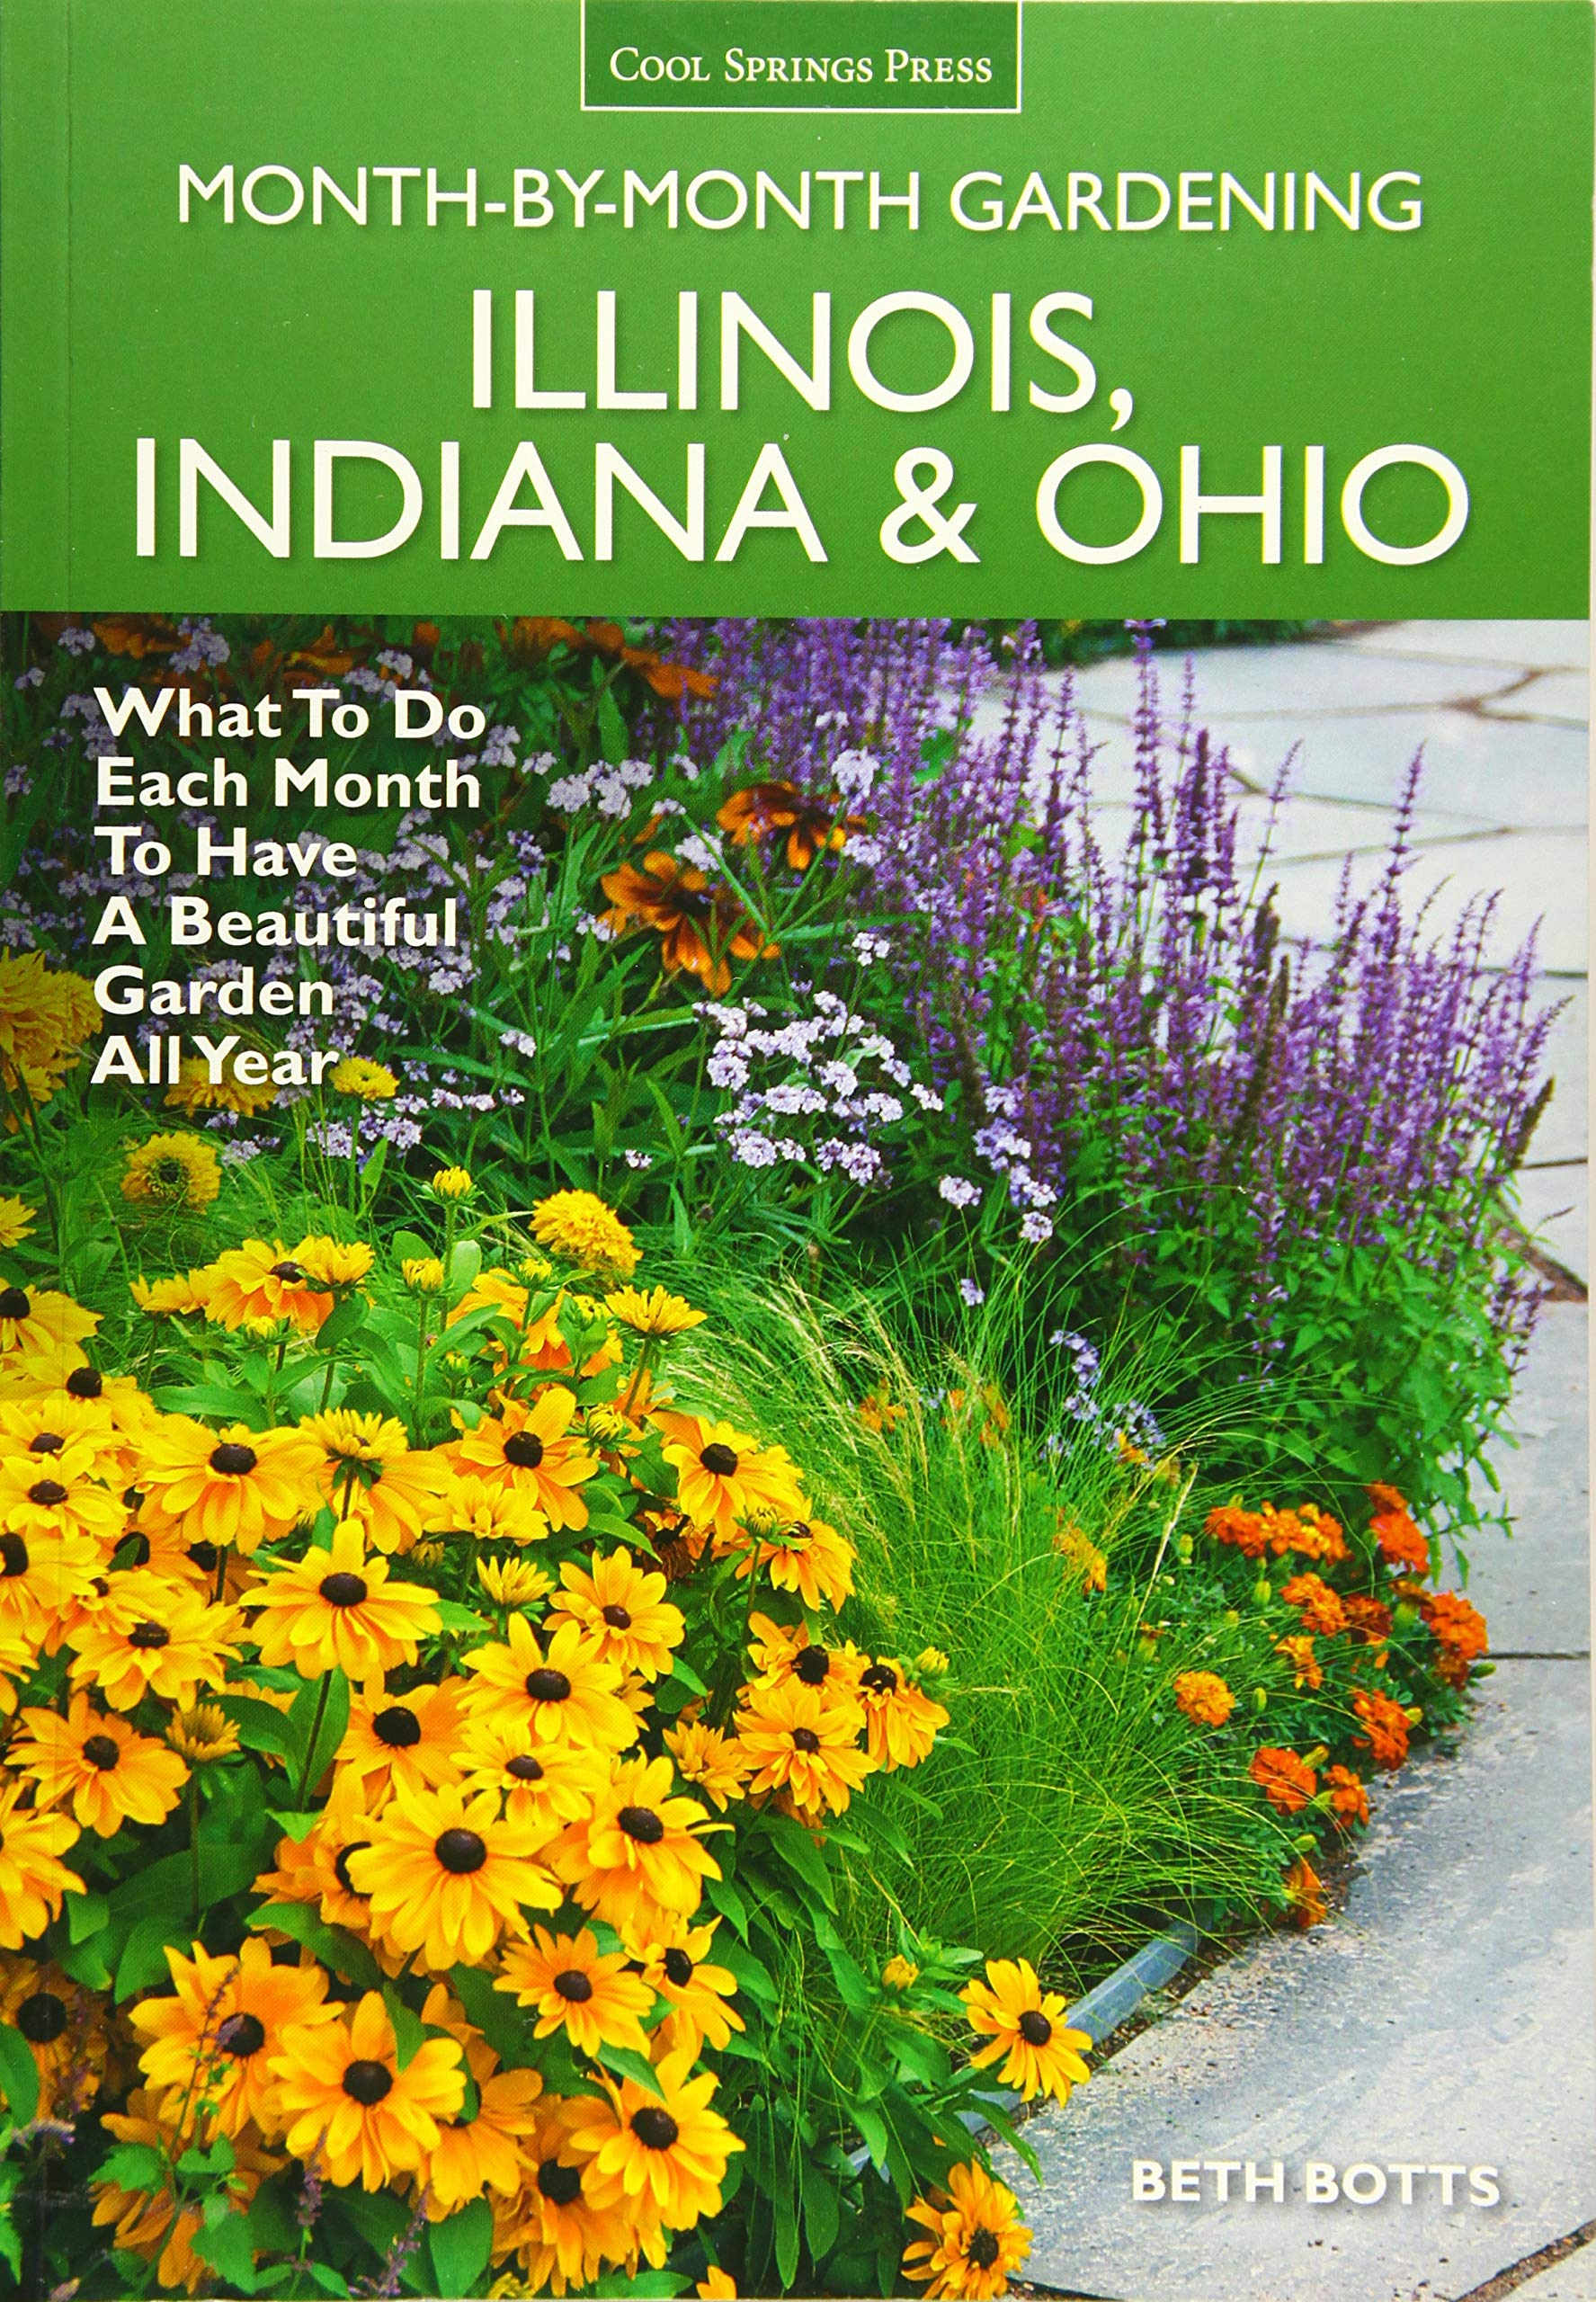 Illinois, Indiana & Ohio Month-by-Month Gardening: What to Do Each Month to Have a Beautiful Garden All Year by Cool Springs Press